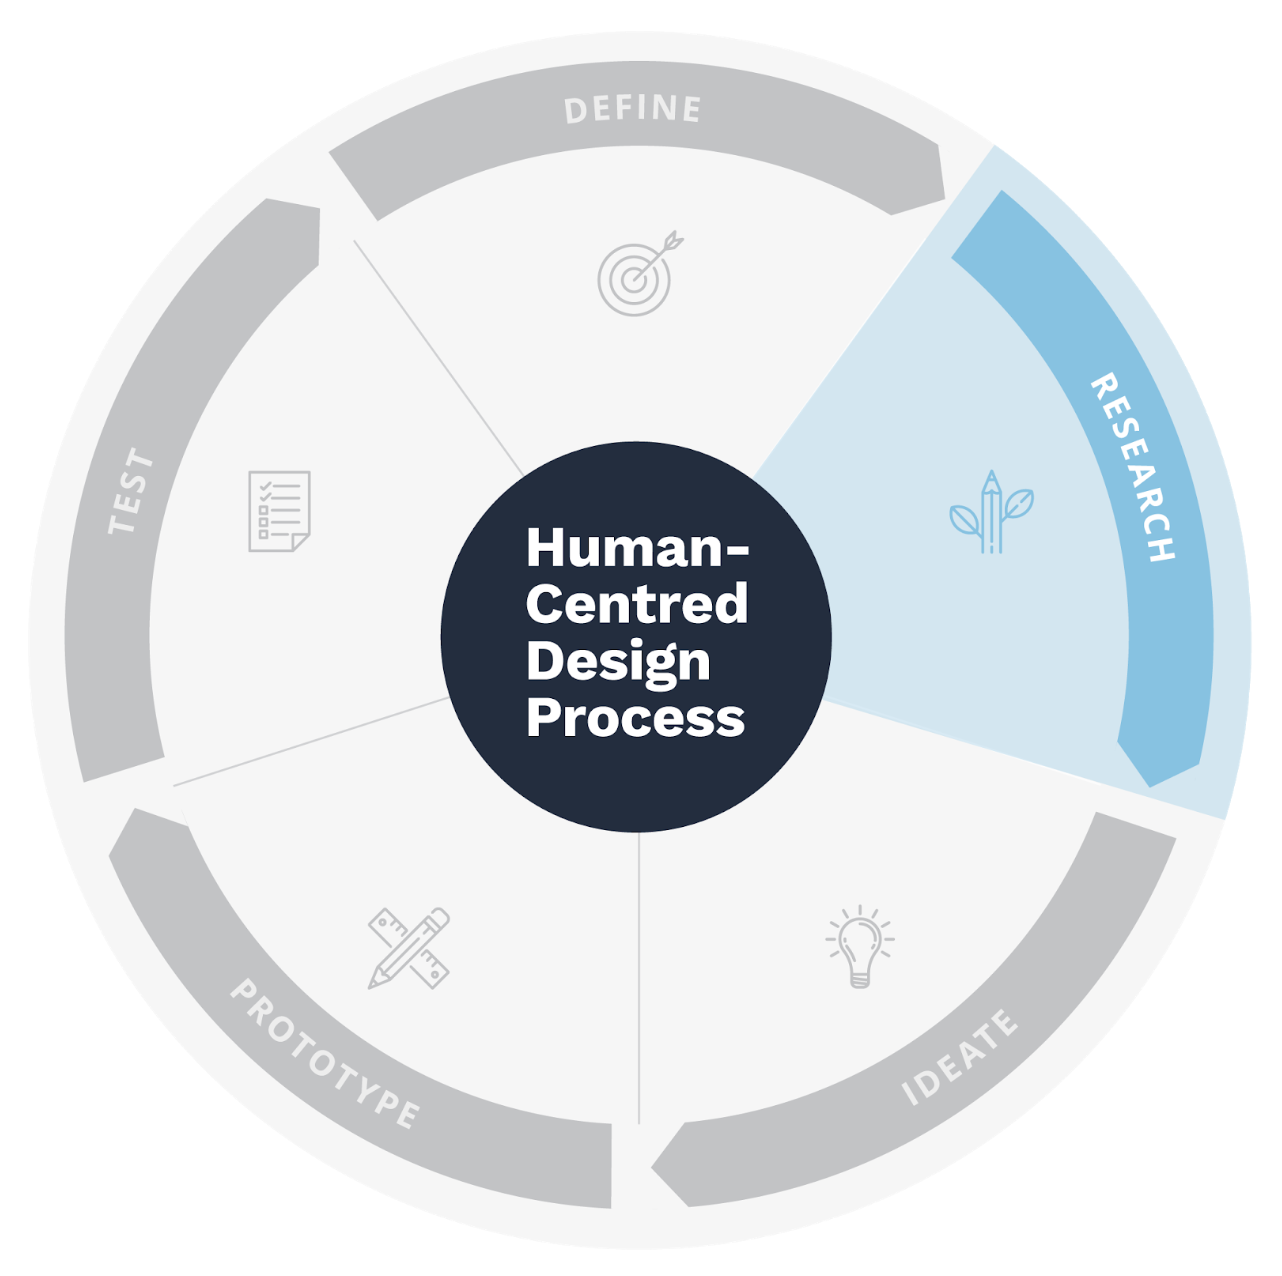 The Empathy Map is used for activities related to Research in the Human-Centered Design process -